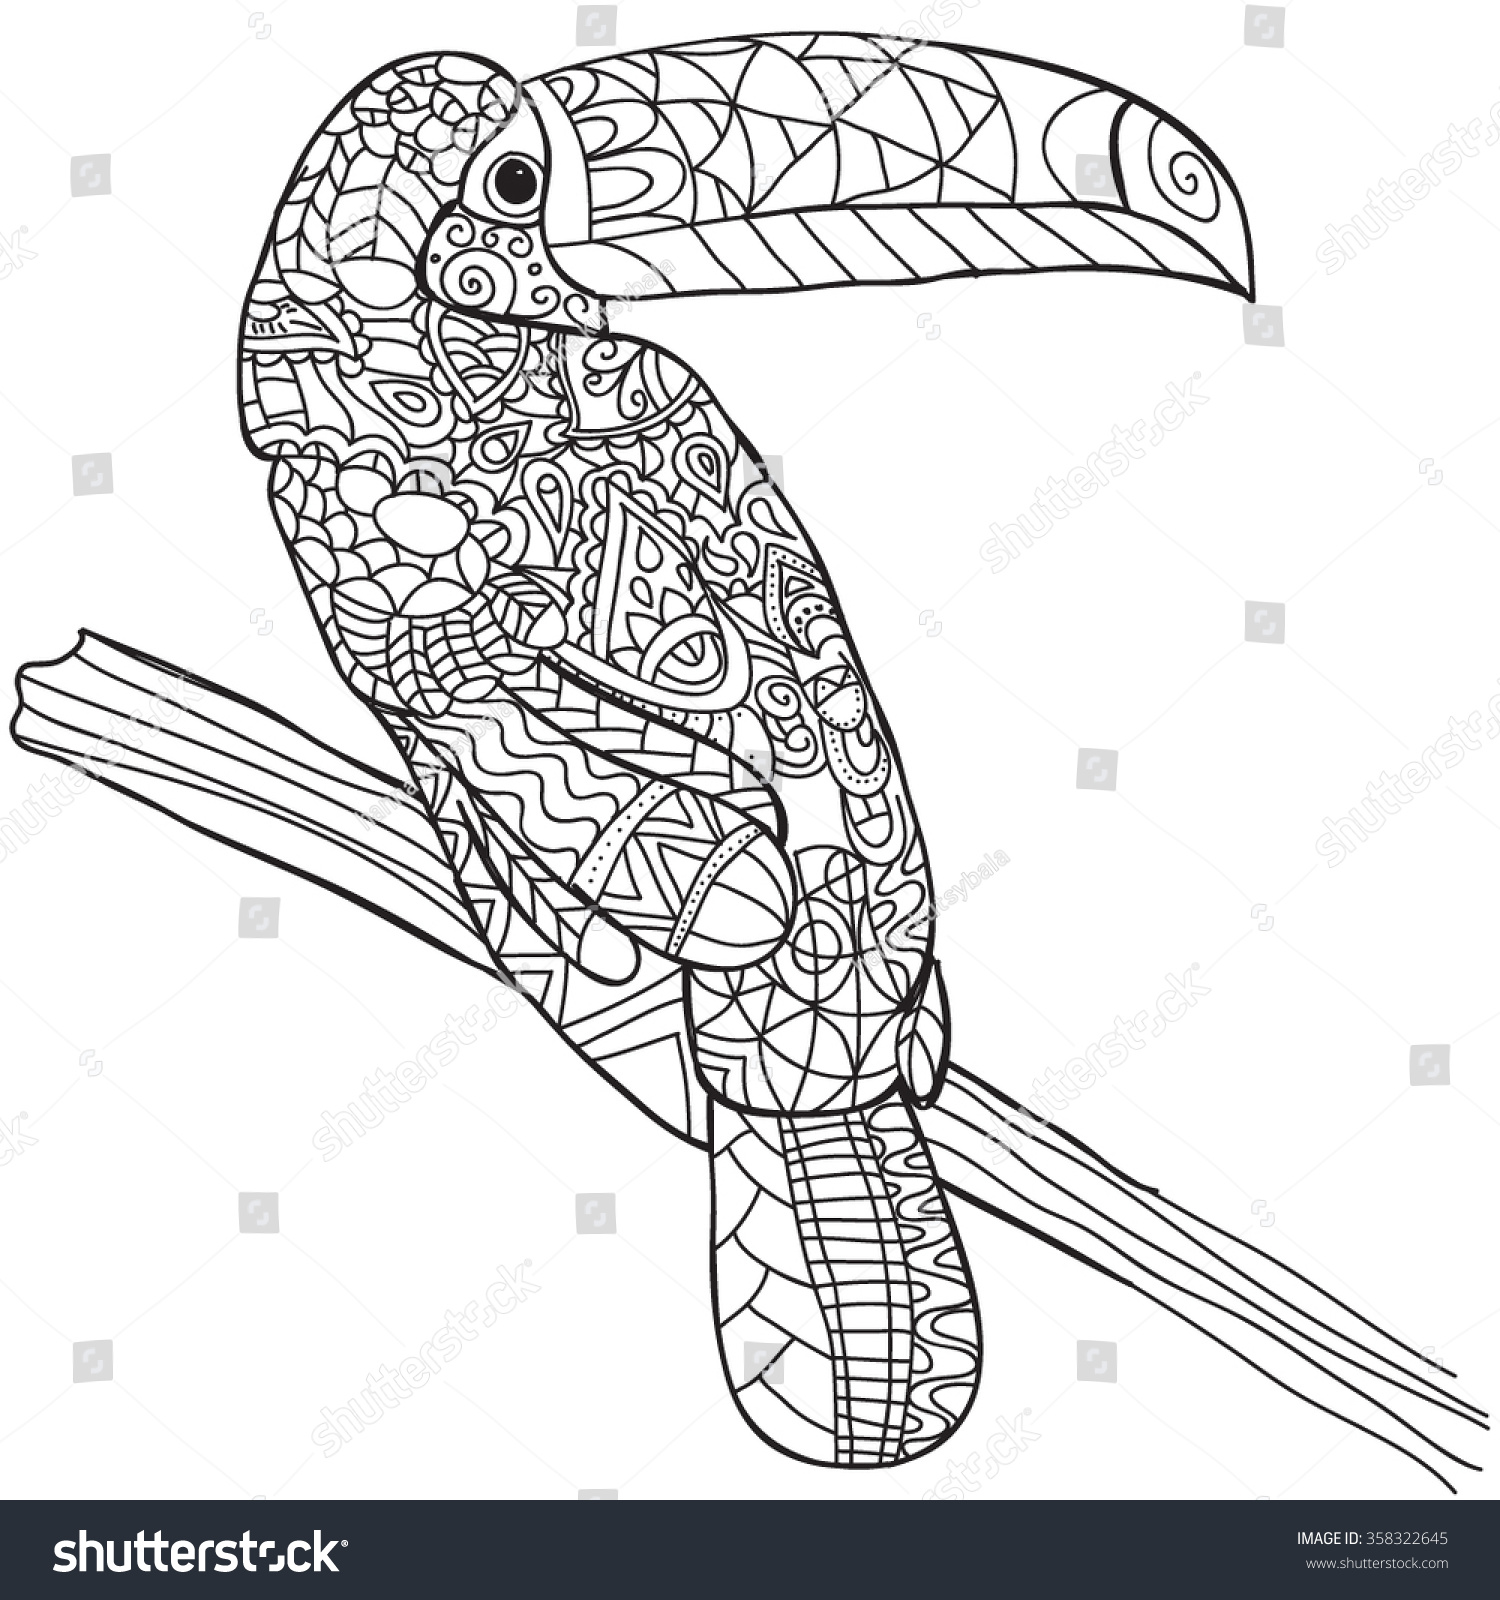 Adult Top Toucan Coloring Pages Images beauty hand drawn bird toucan isolated on transparent background anti stress coloring page vector monochrome sketch 35832264